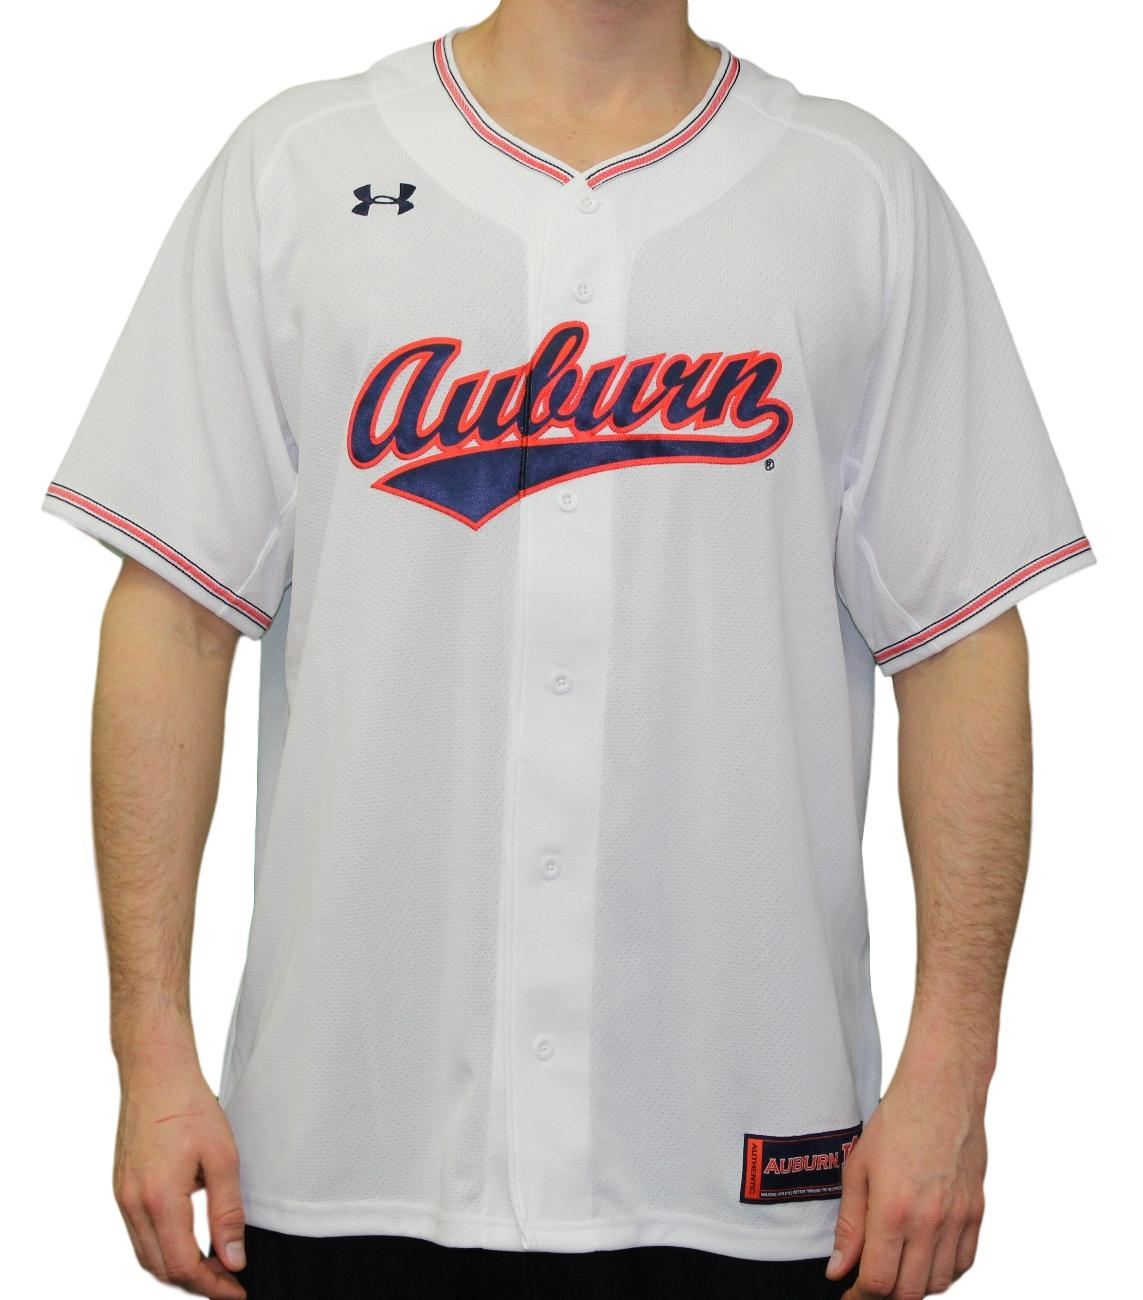 Auburn Tigers Under Armour NCAA Men's Baseball Jersey - White